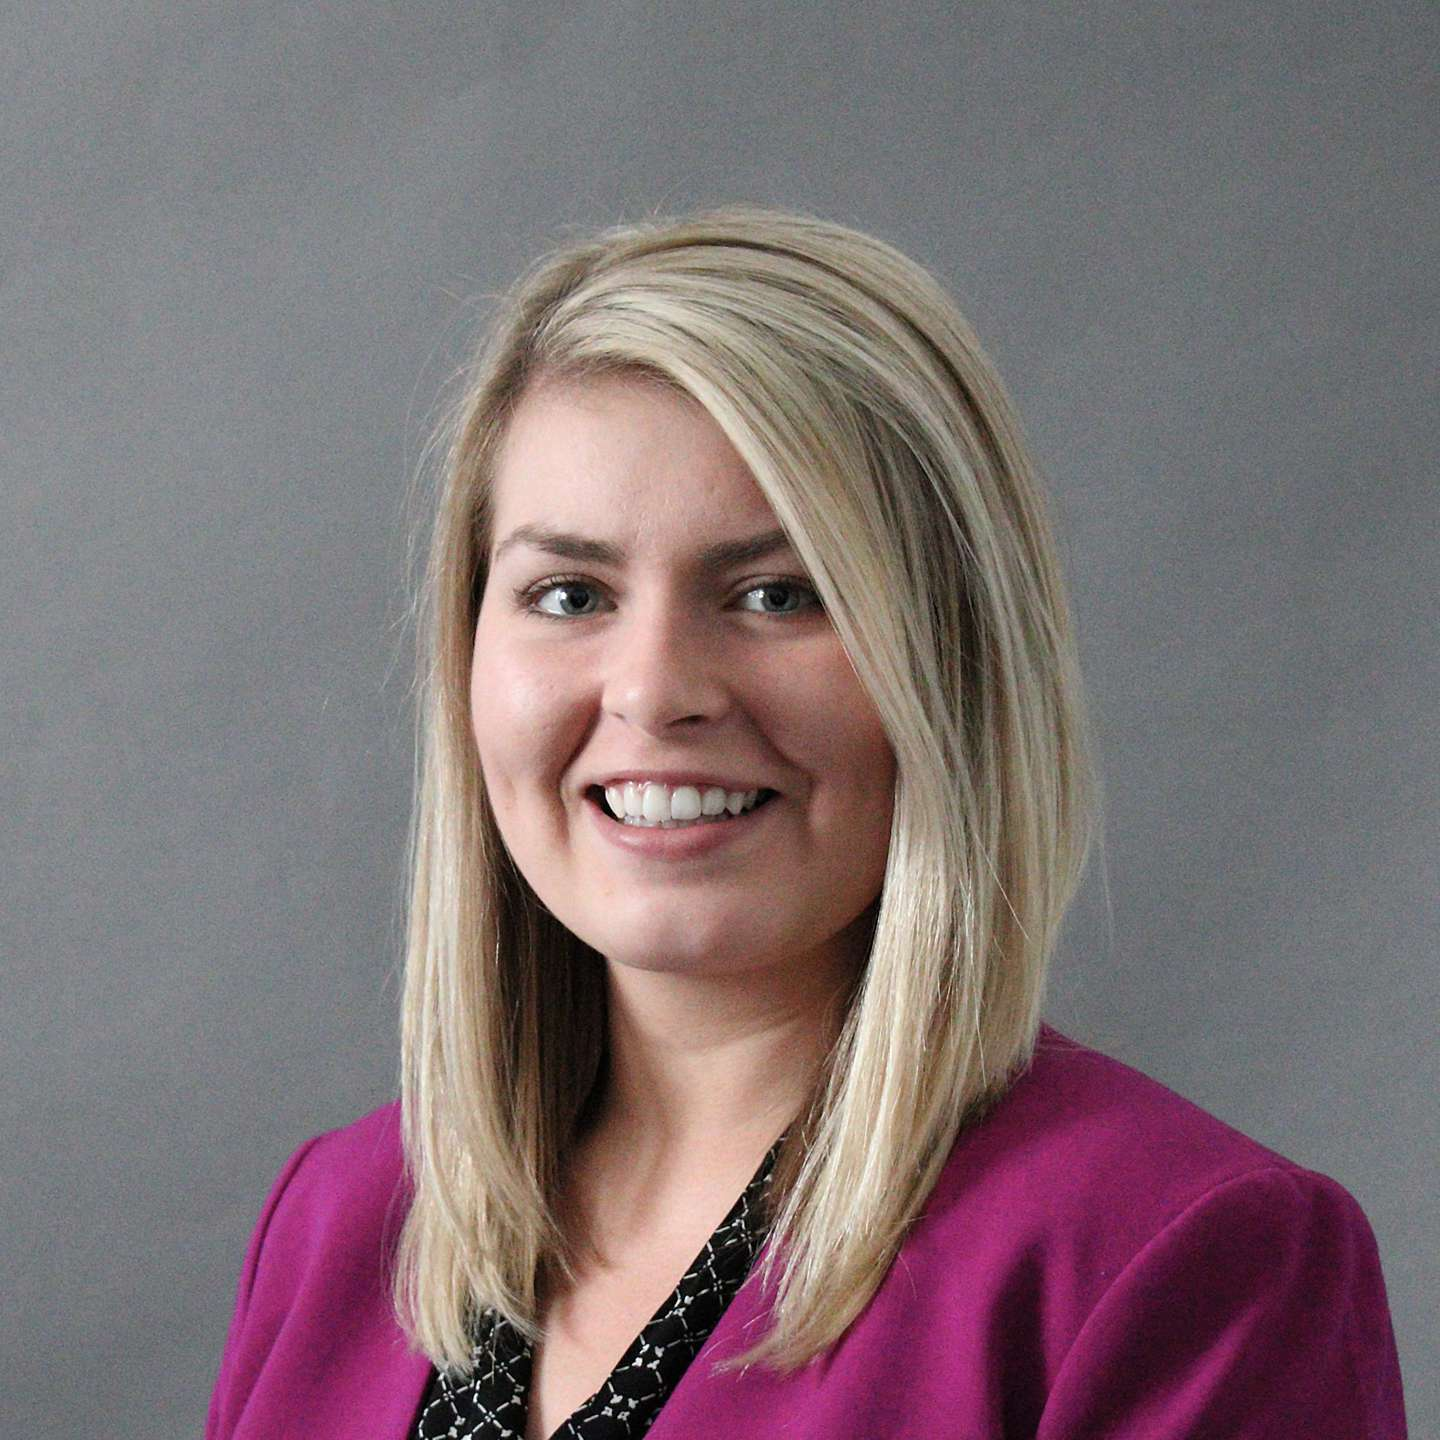 Megan Eldridge - Admissions Counselor